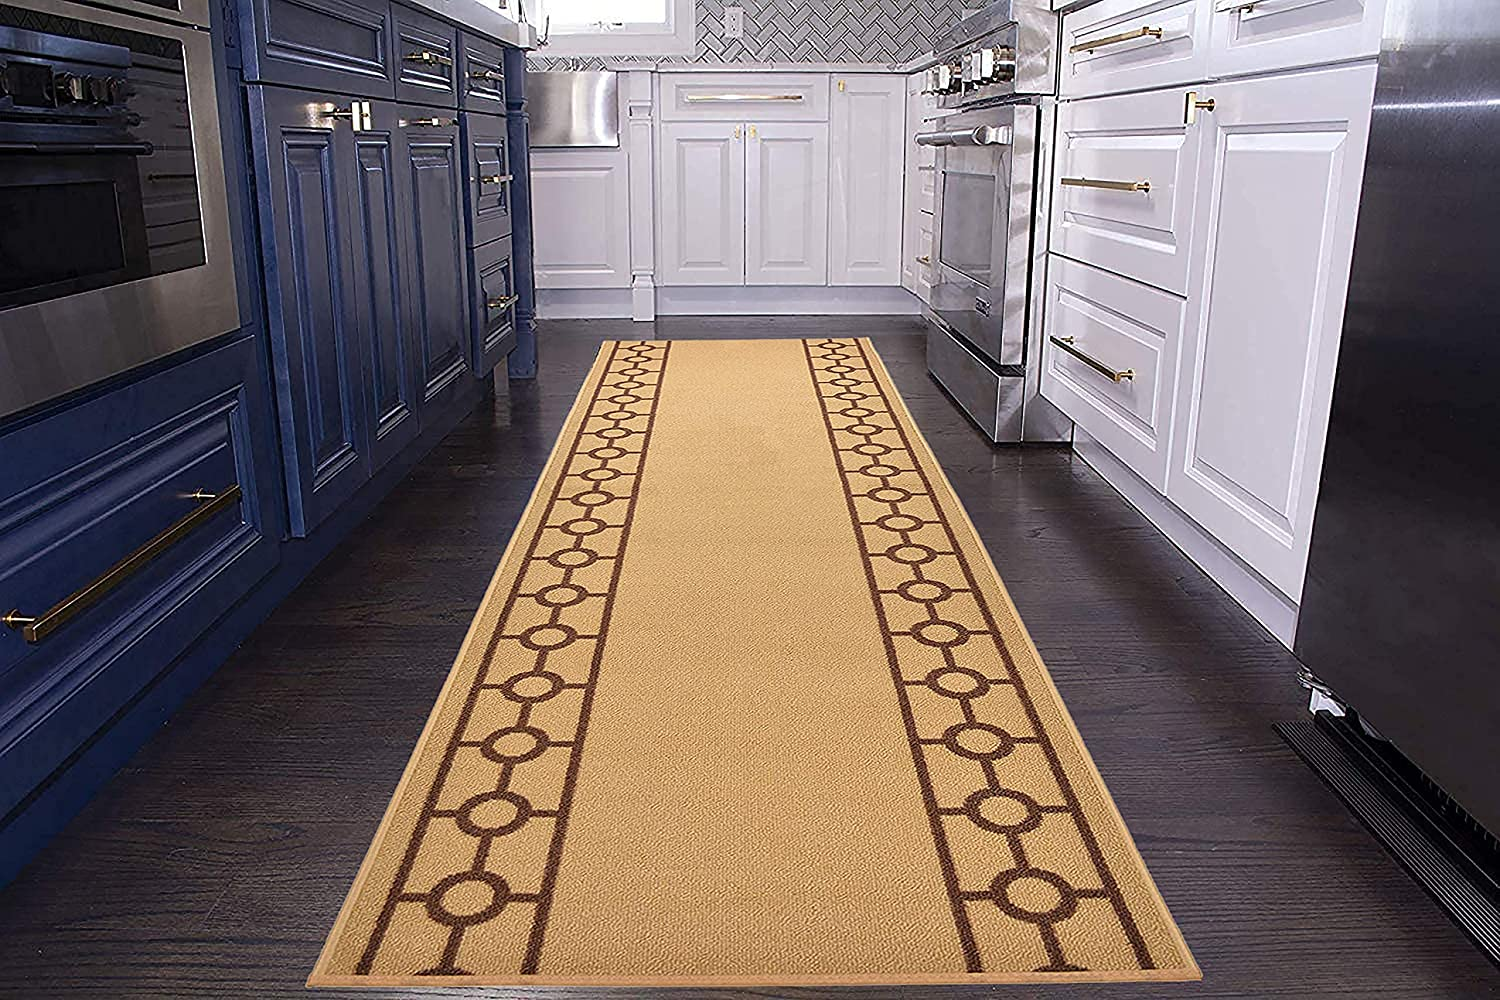 Max 67% OFF Custom Size Runner Rug Chain Border Wide 36 x Y inch Max 61% OFF Roll